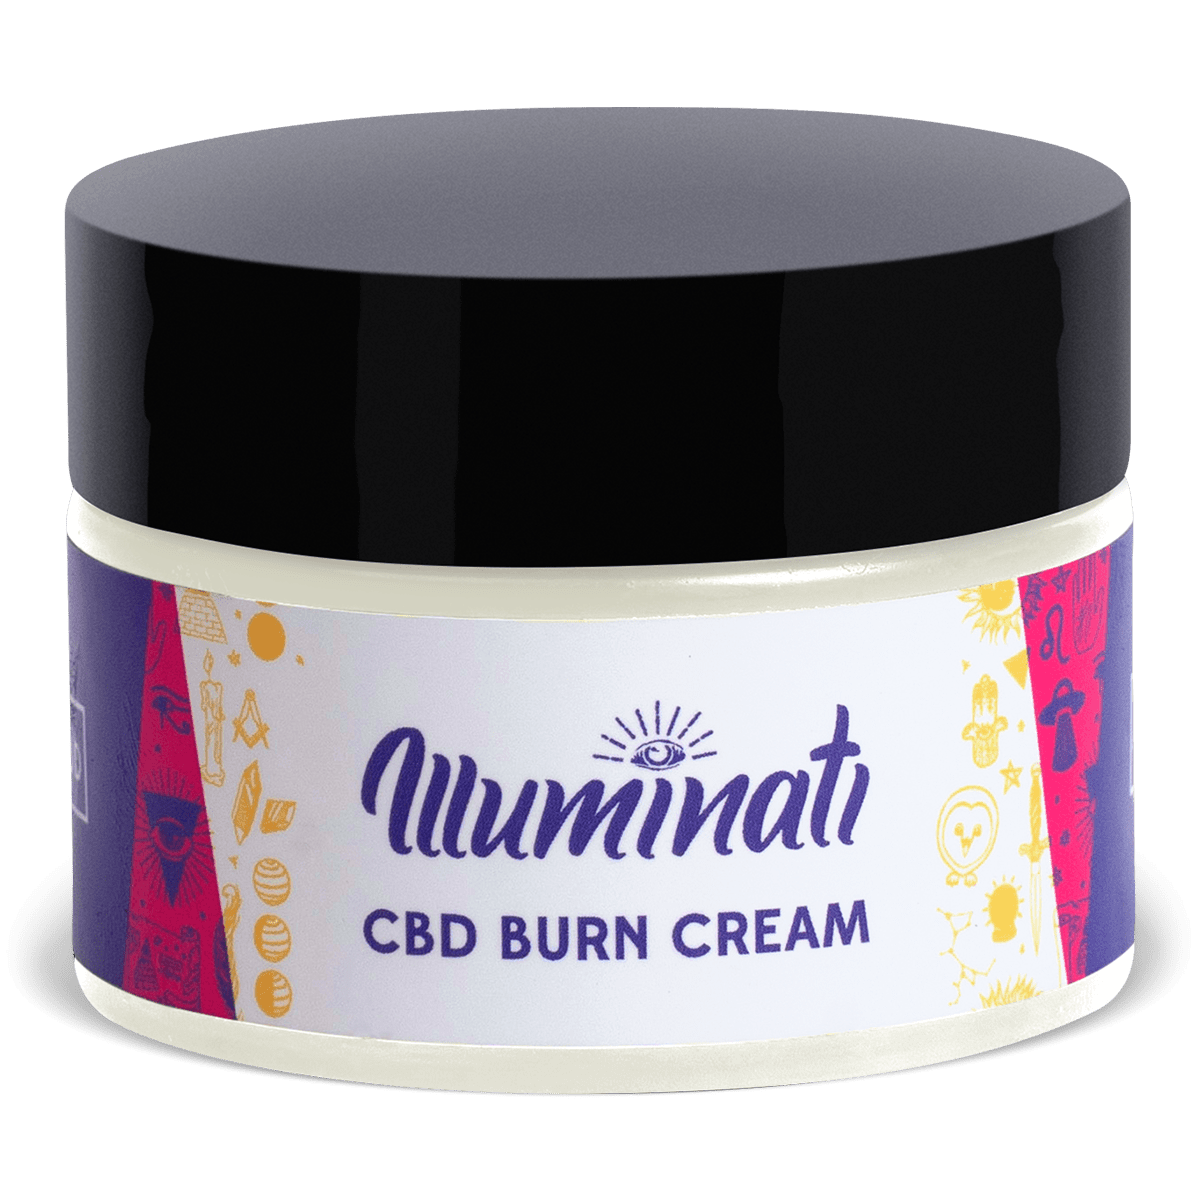 Illuminati CBD Burn Cream